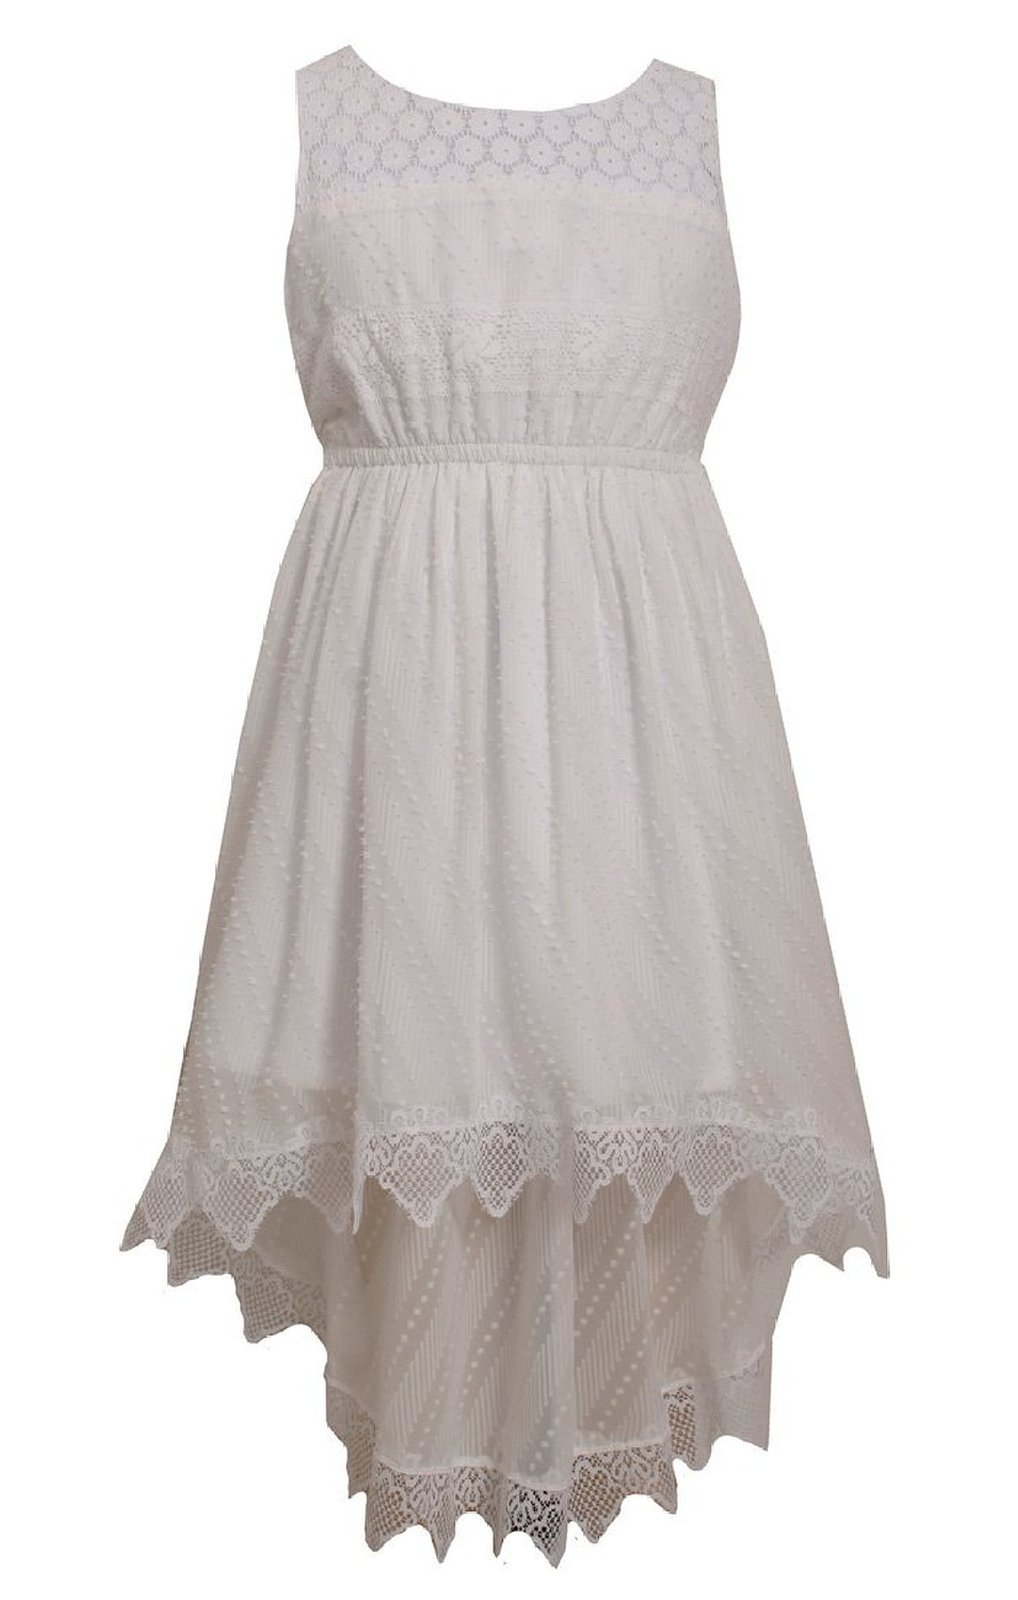 Bonnie Jean Big Girls Plus Size White Lace and Burnout Chiffon High Low Dress